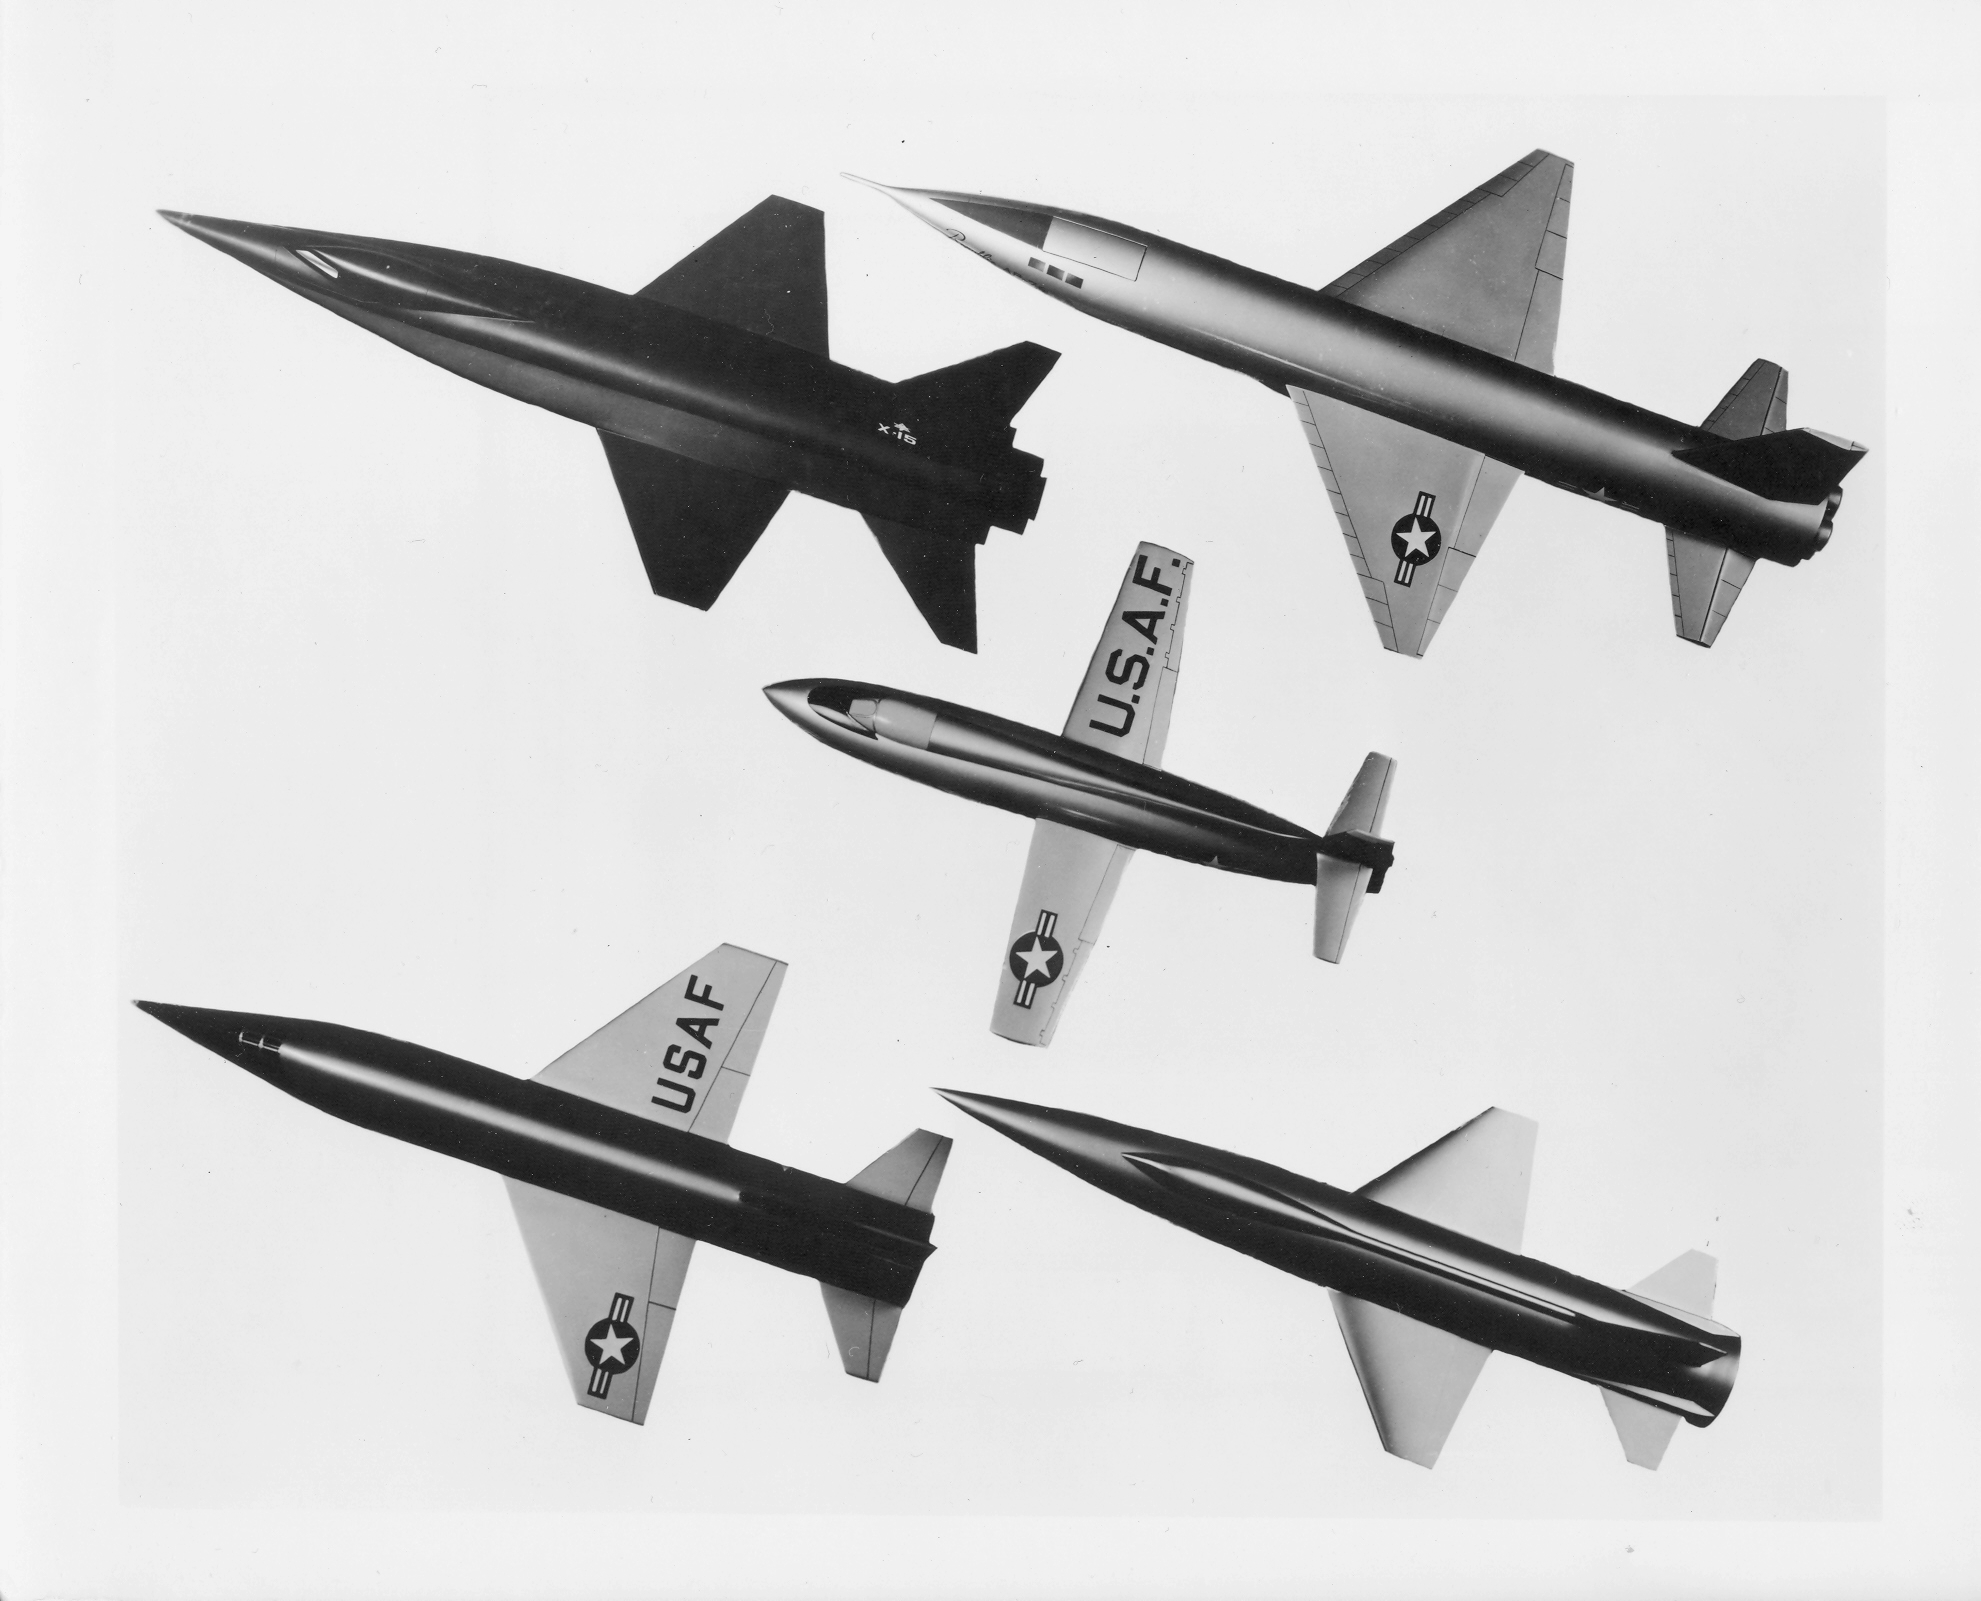 May 9, 1955: X-15 design proposals submitted